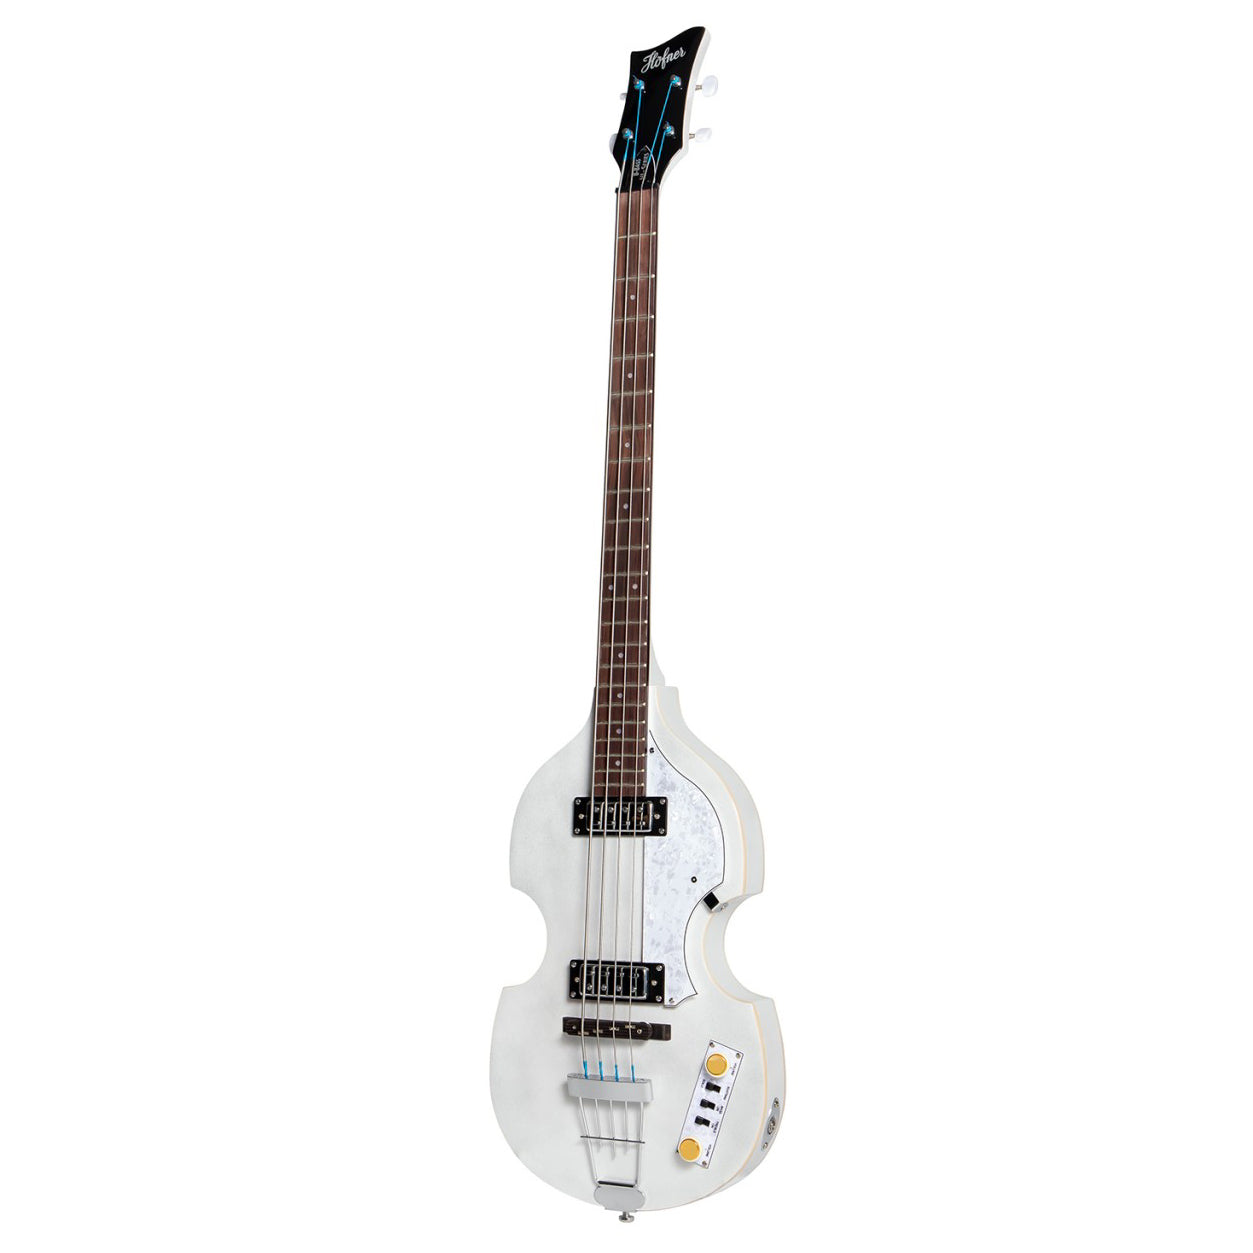 Hofner Ignition Pro Violin Bass Pearl White HOF-HI-BB-PE-PW